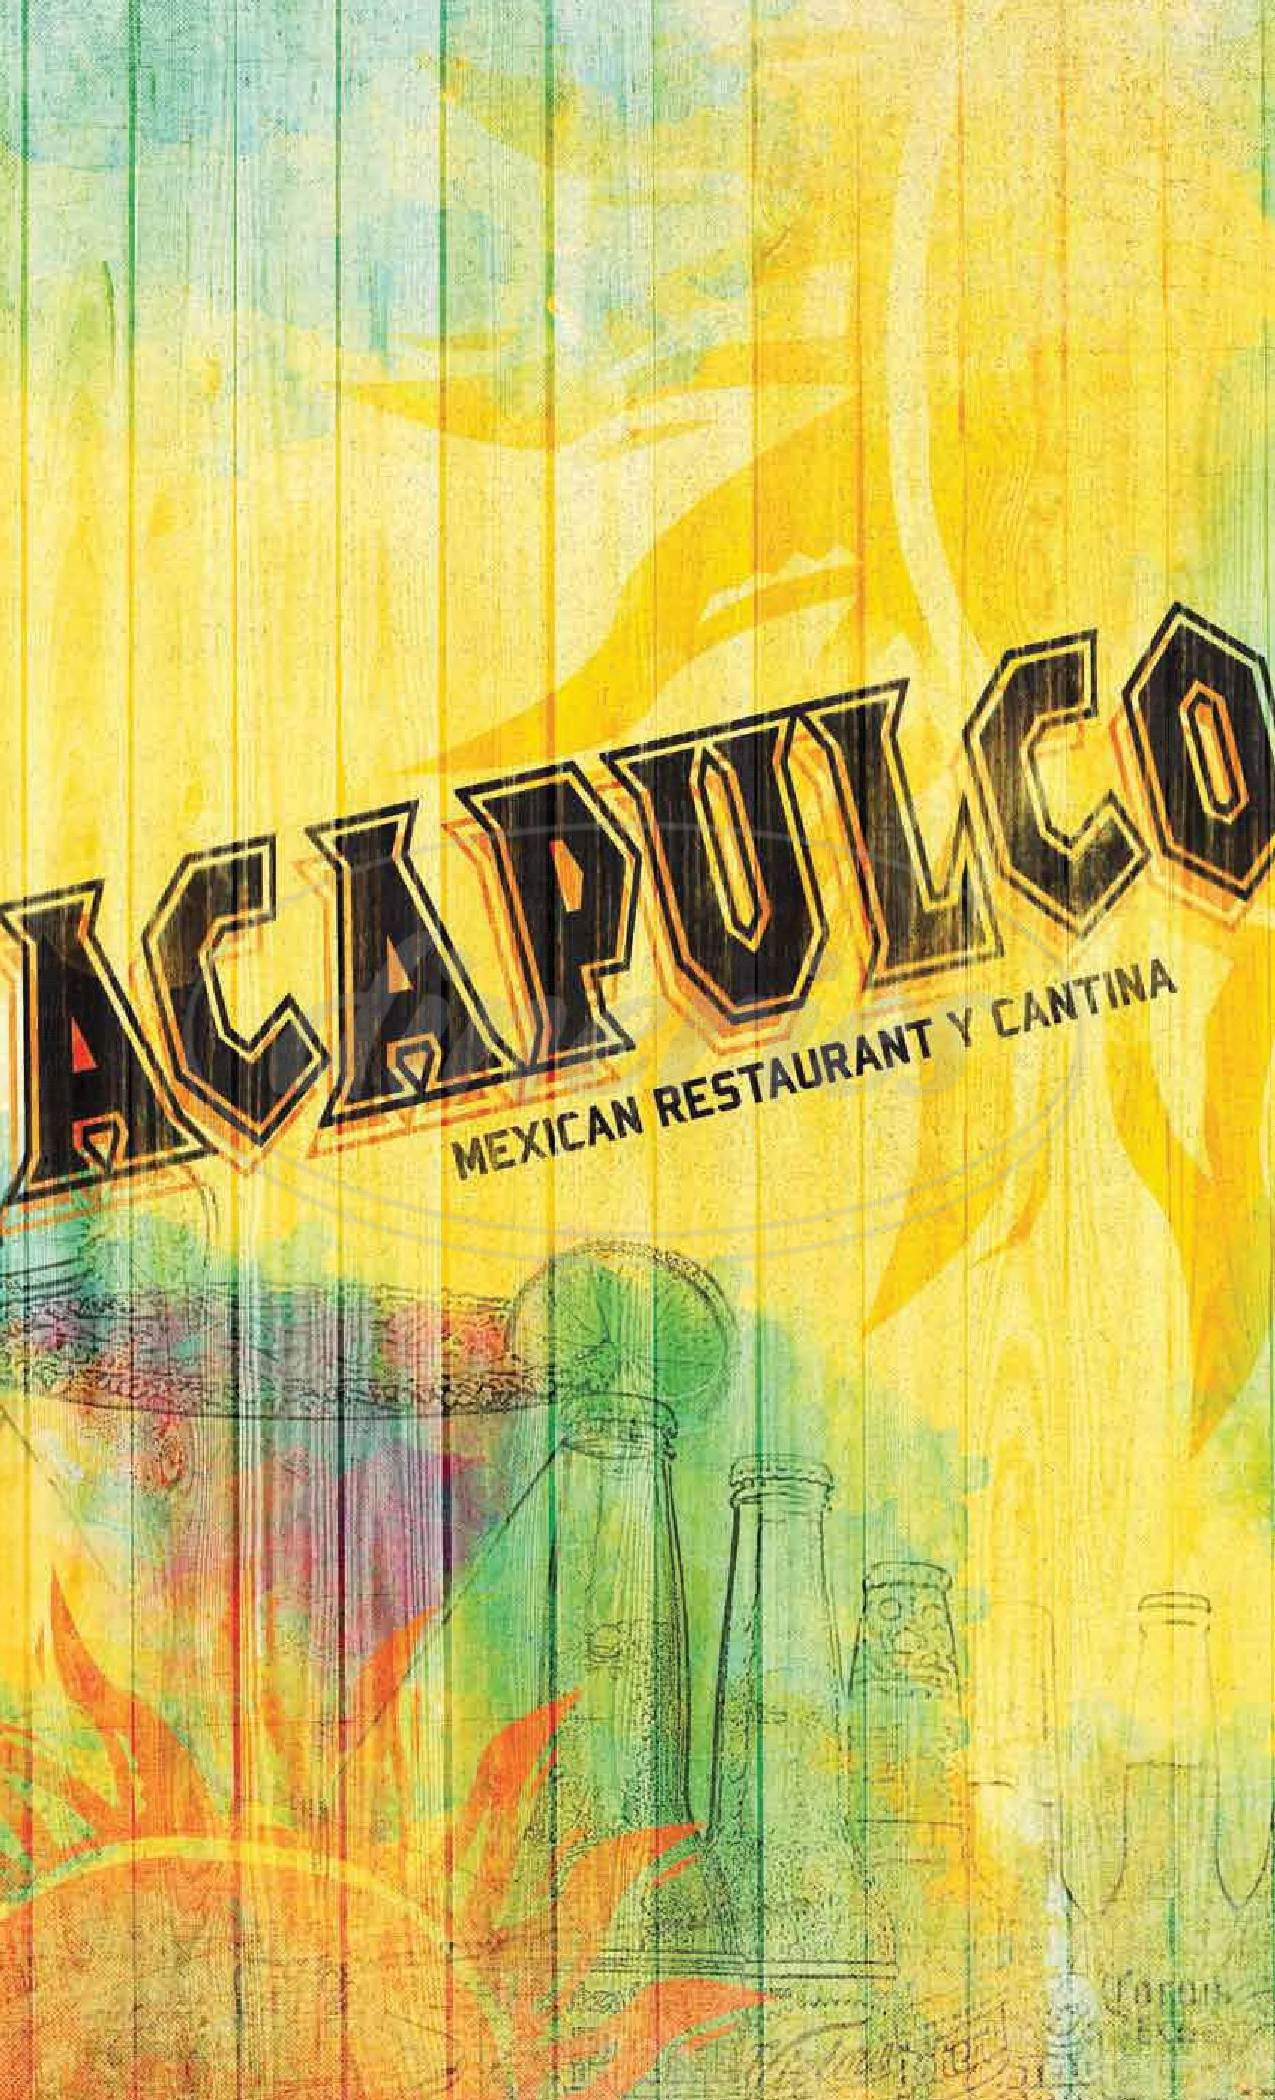 menu for Acapulco Mexican Restaurant y Cantina